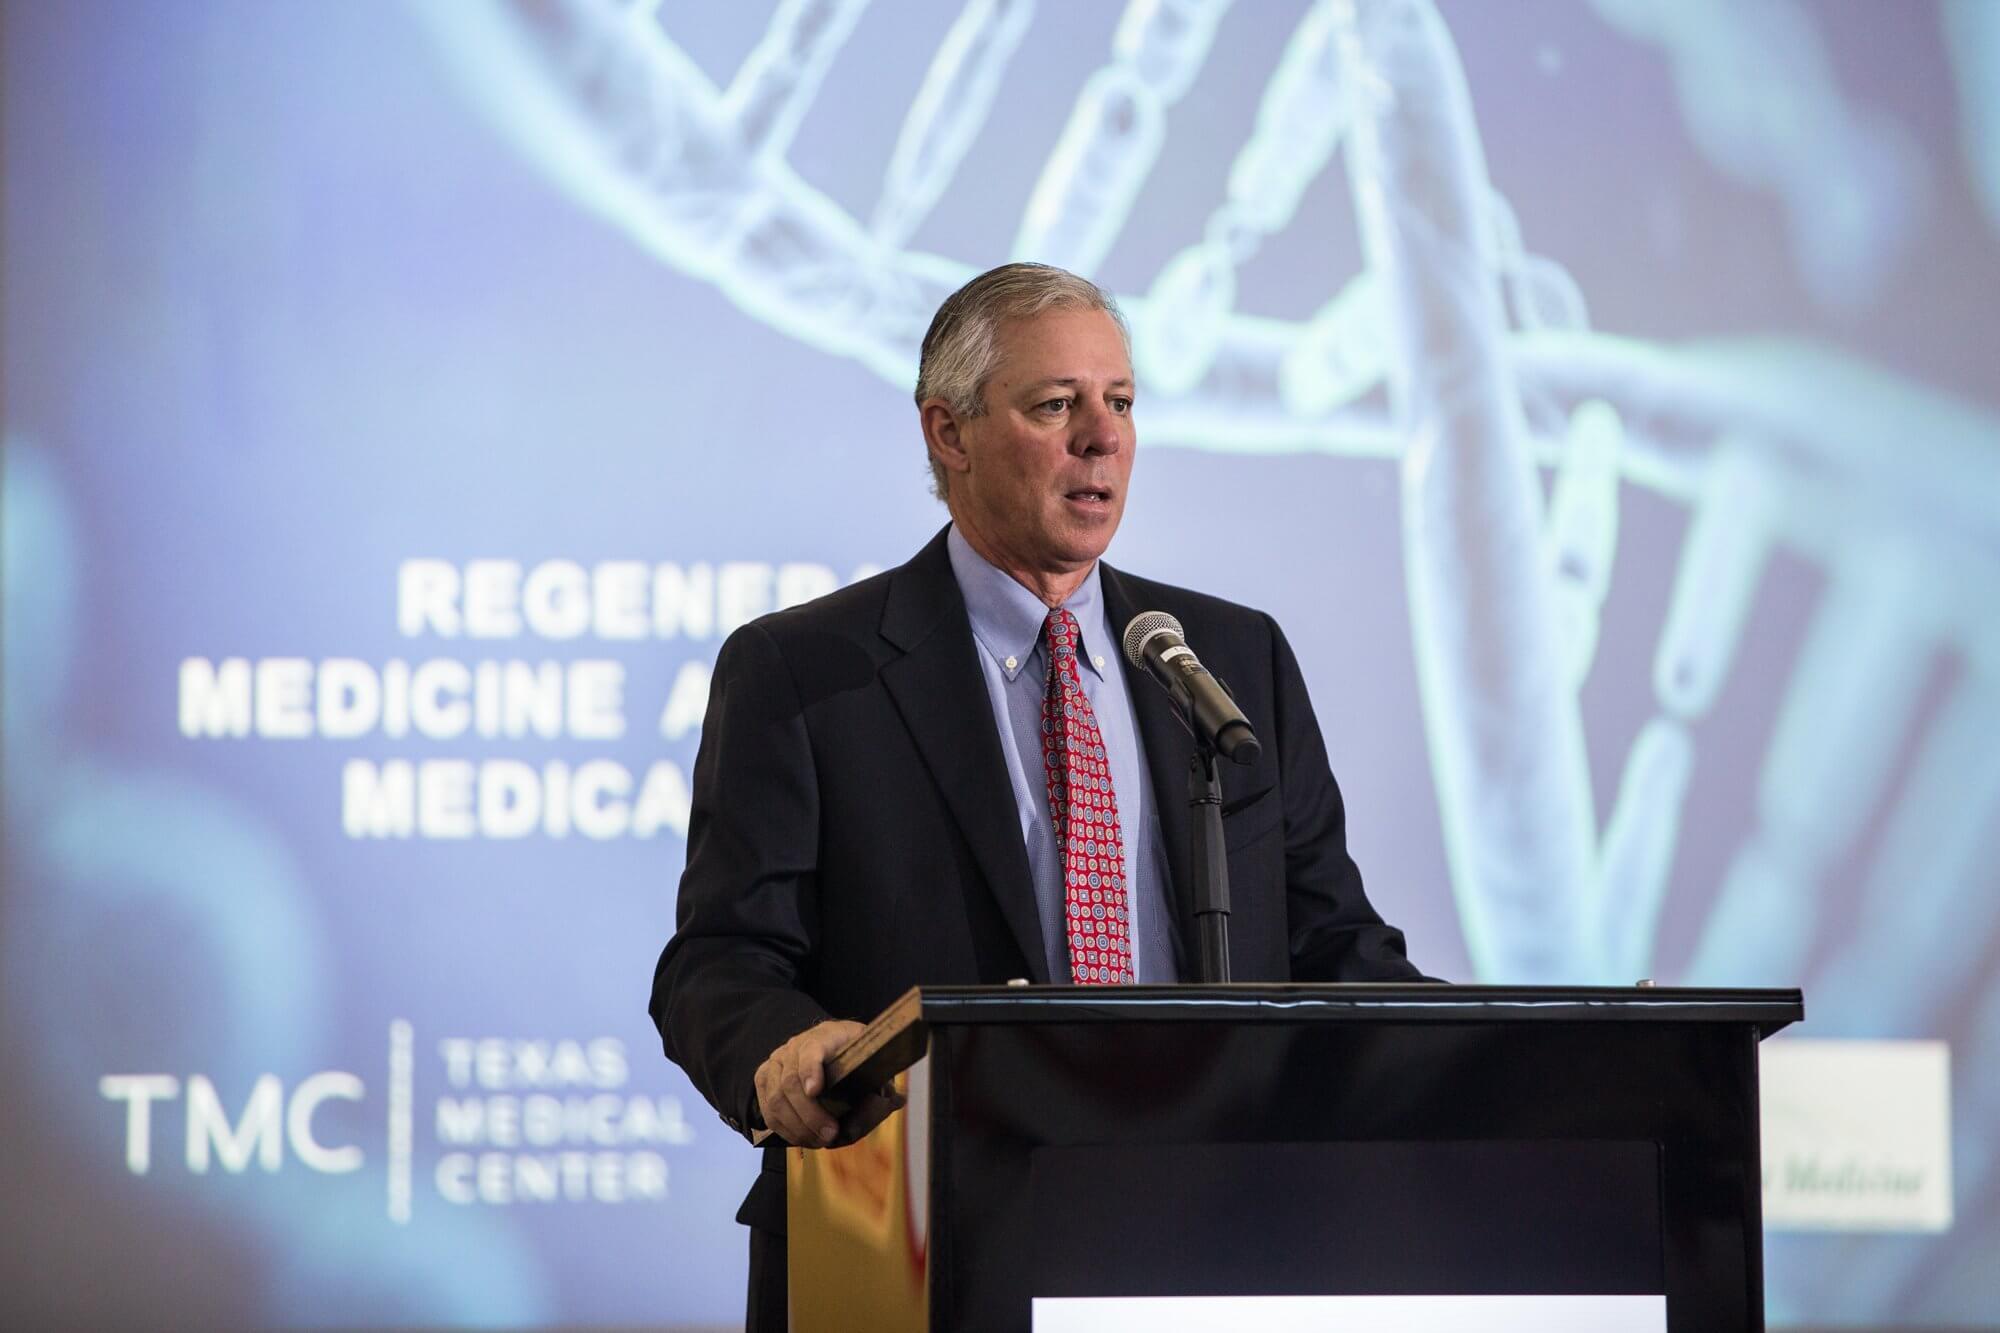 Robert C. Robbins, M.D., president and chief executive officer of the Texas Medical Center, provides opening remarks